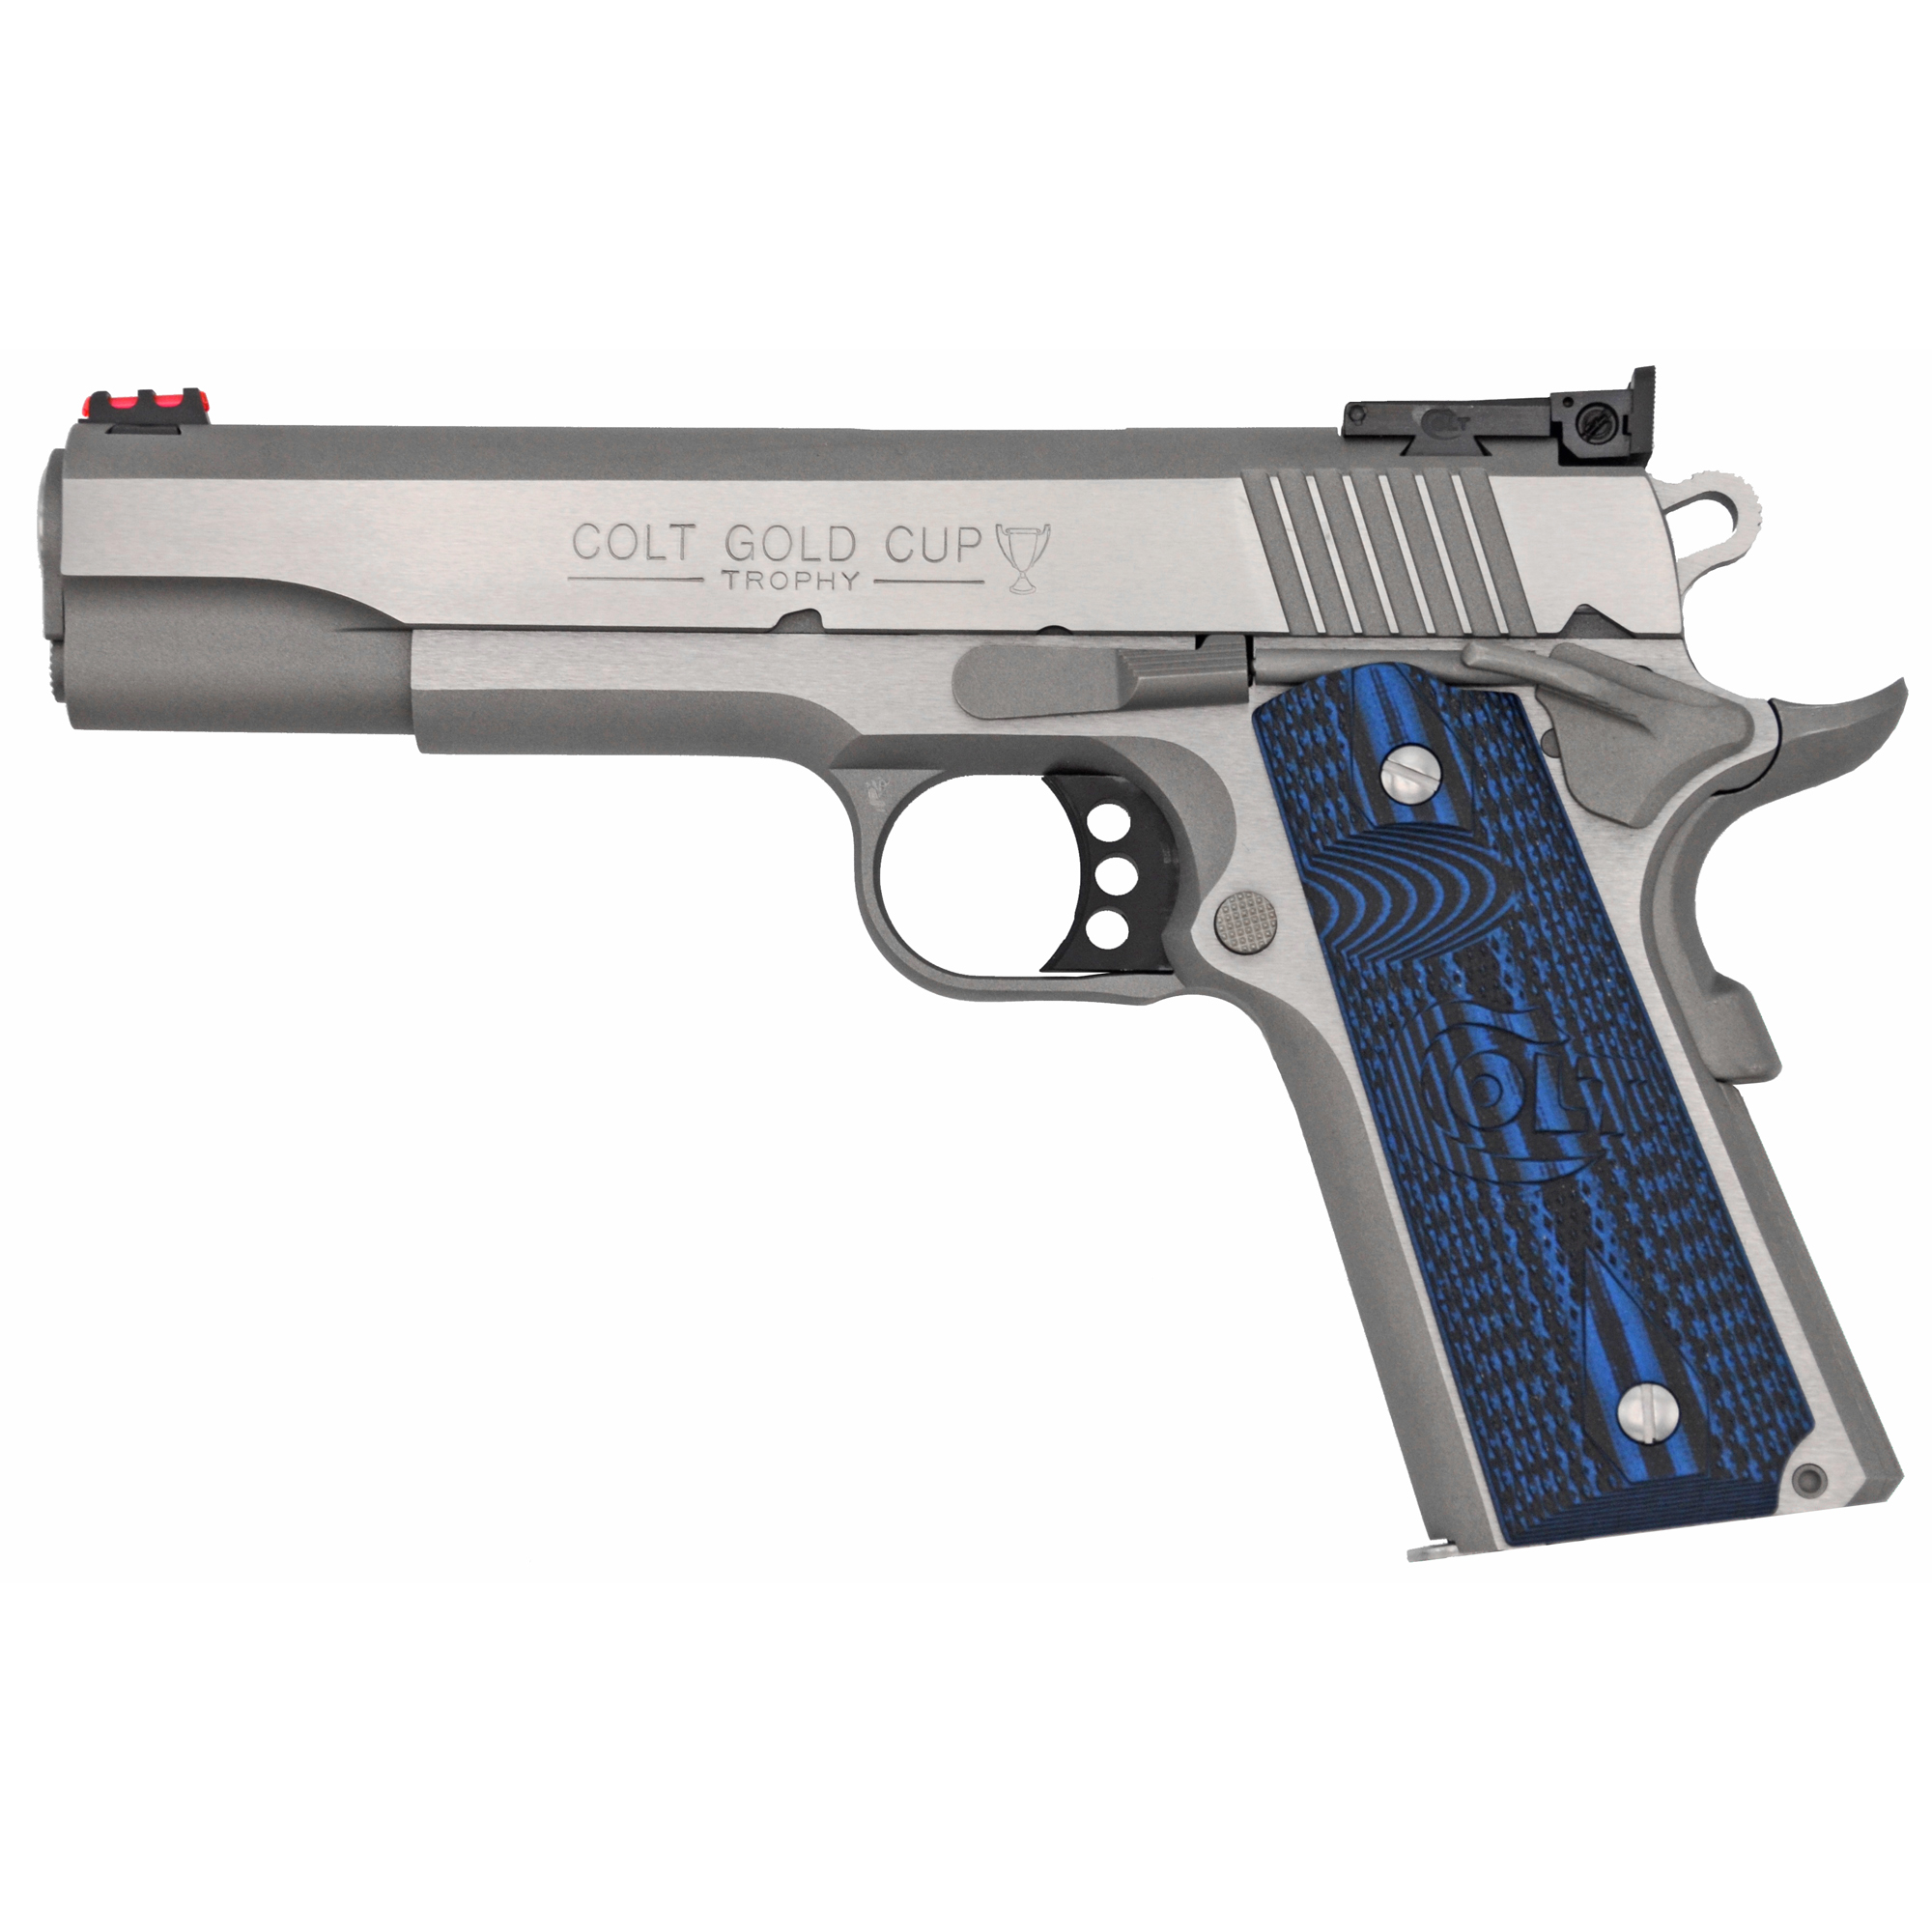 "The Colt M1911 pistol has been a favorite for 100 years as a service pistol"" law enforcement pistol"" and personal defense firearm. This pistol features G10 grips"" an upswept beavertail grip safety and adjustable sights with fiber optic front."